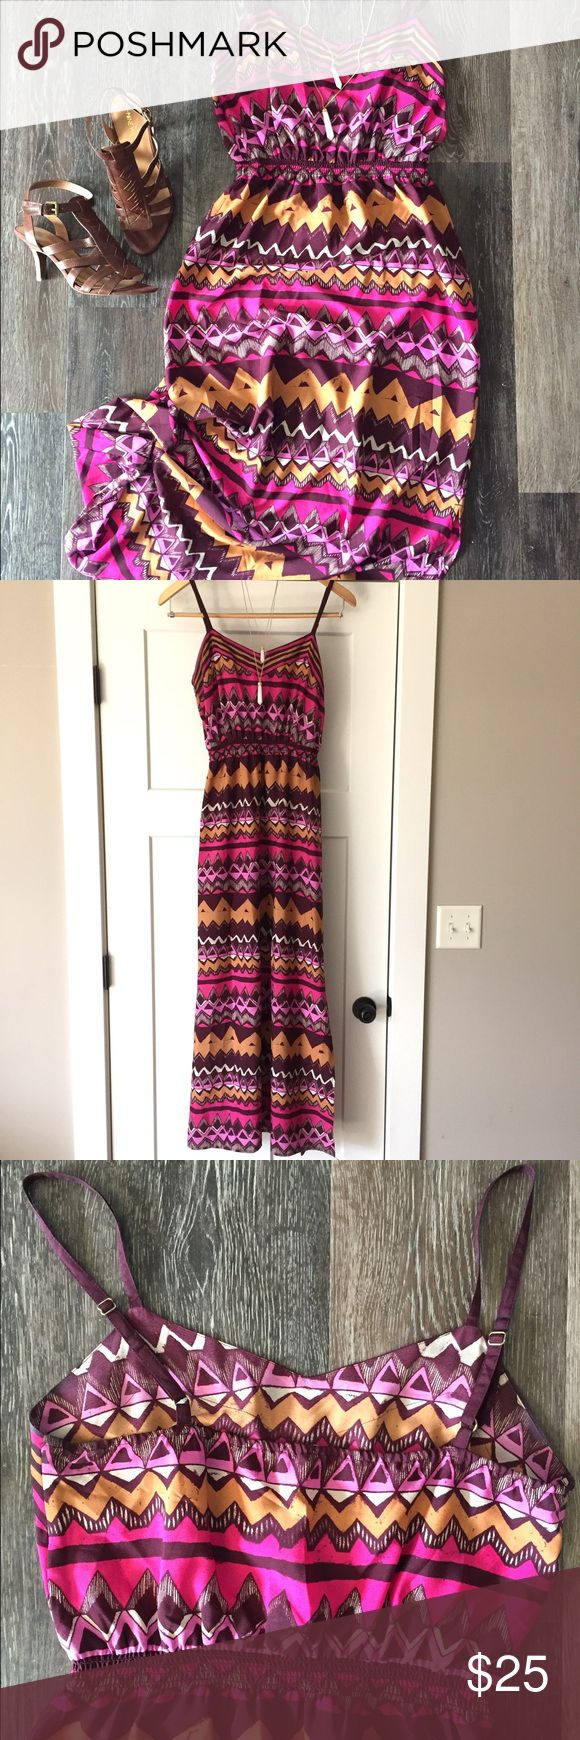 Tribal maxi dress Tribal maxi dress by LOFT. Perfect for the spring/summer! Worn once, in perfect condition! LOFT Dresses Maxi